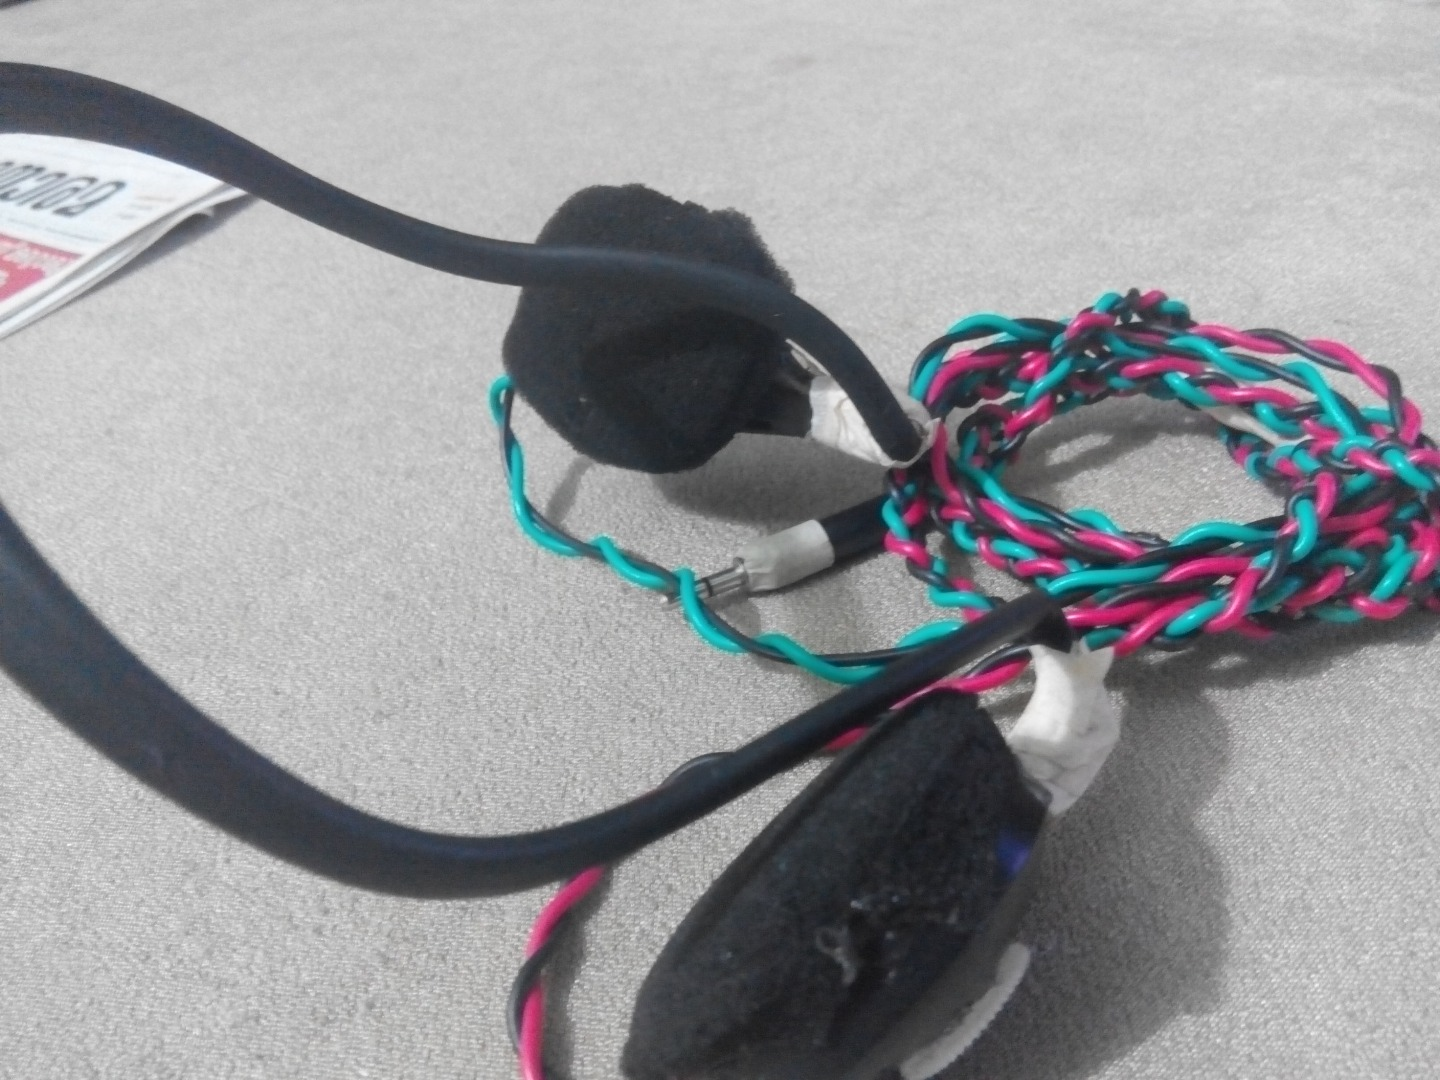 Picture of Brand New HEADSETS From JUNK